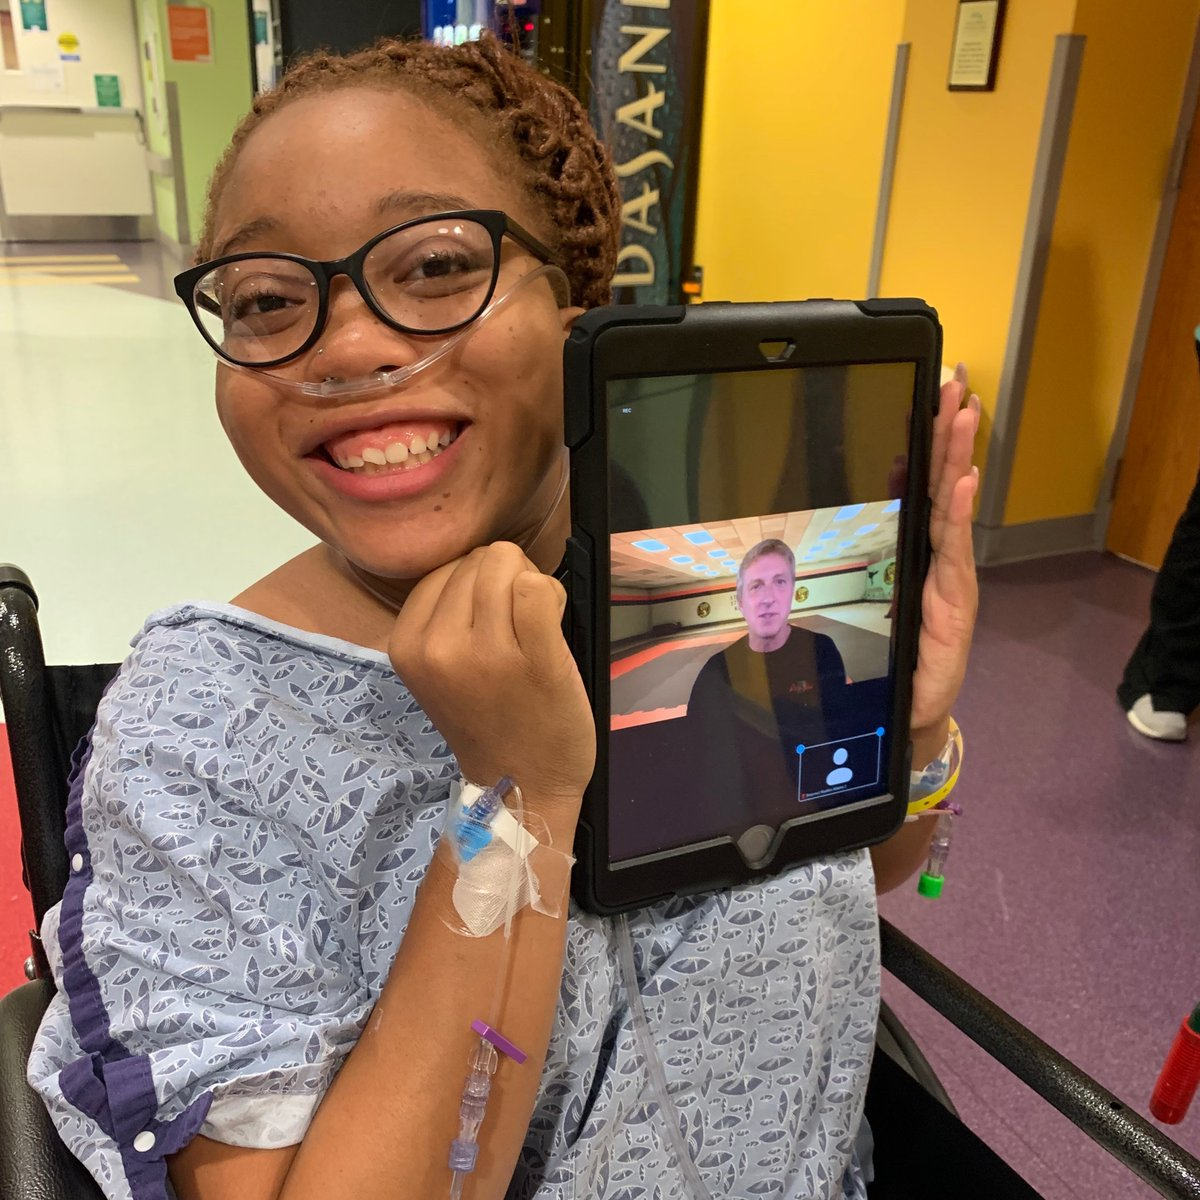 Thank you @WilliamZabka for reminding patients to believe in their potential. We loved chatting with you during this special virtual visit hosted by @CincyChildrens! https://t.co/7xEMCEu6GH